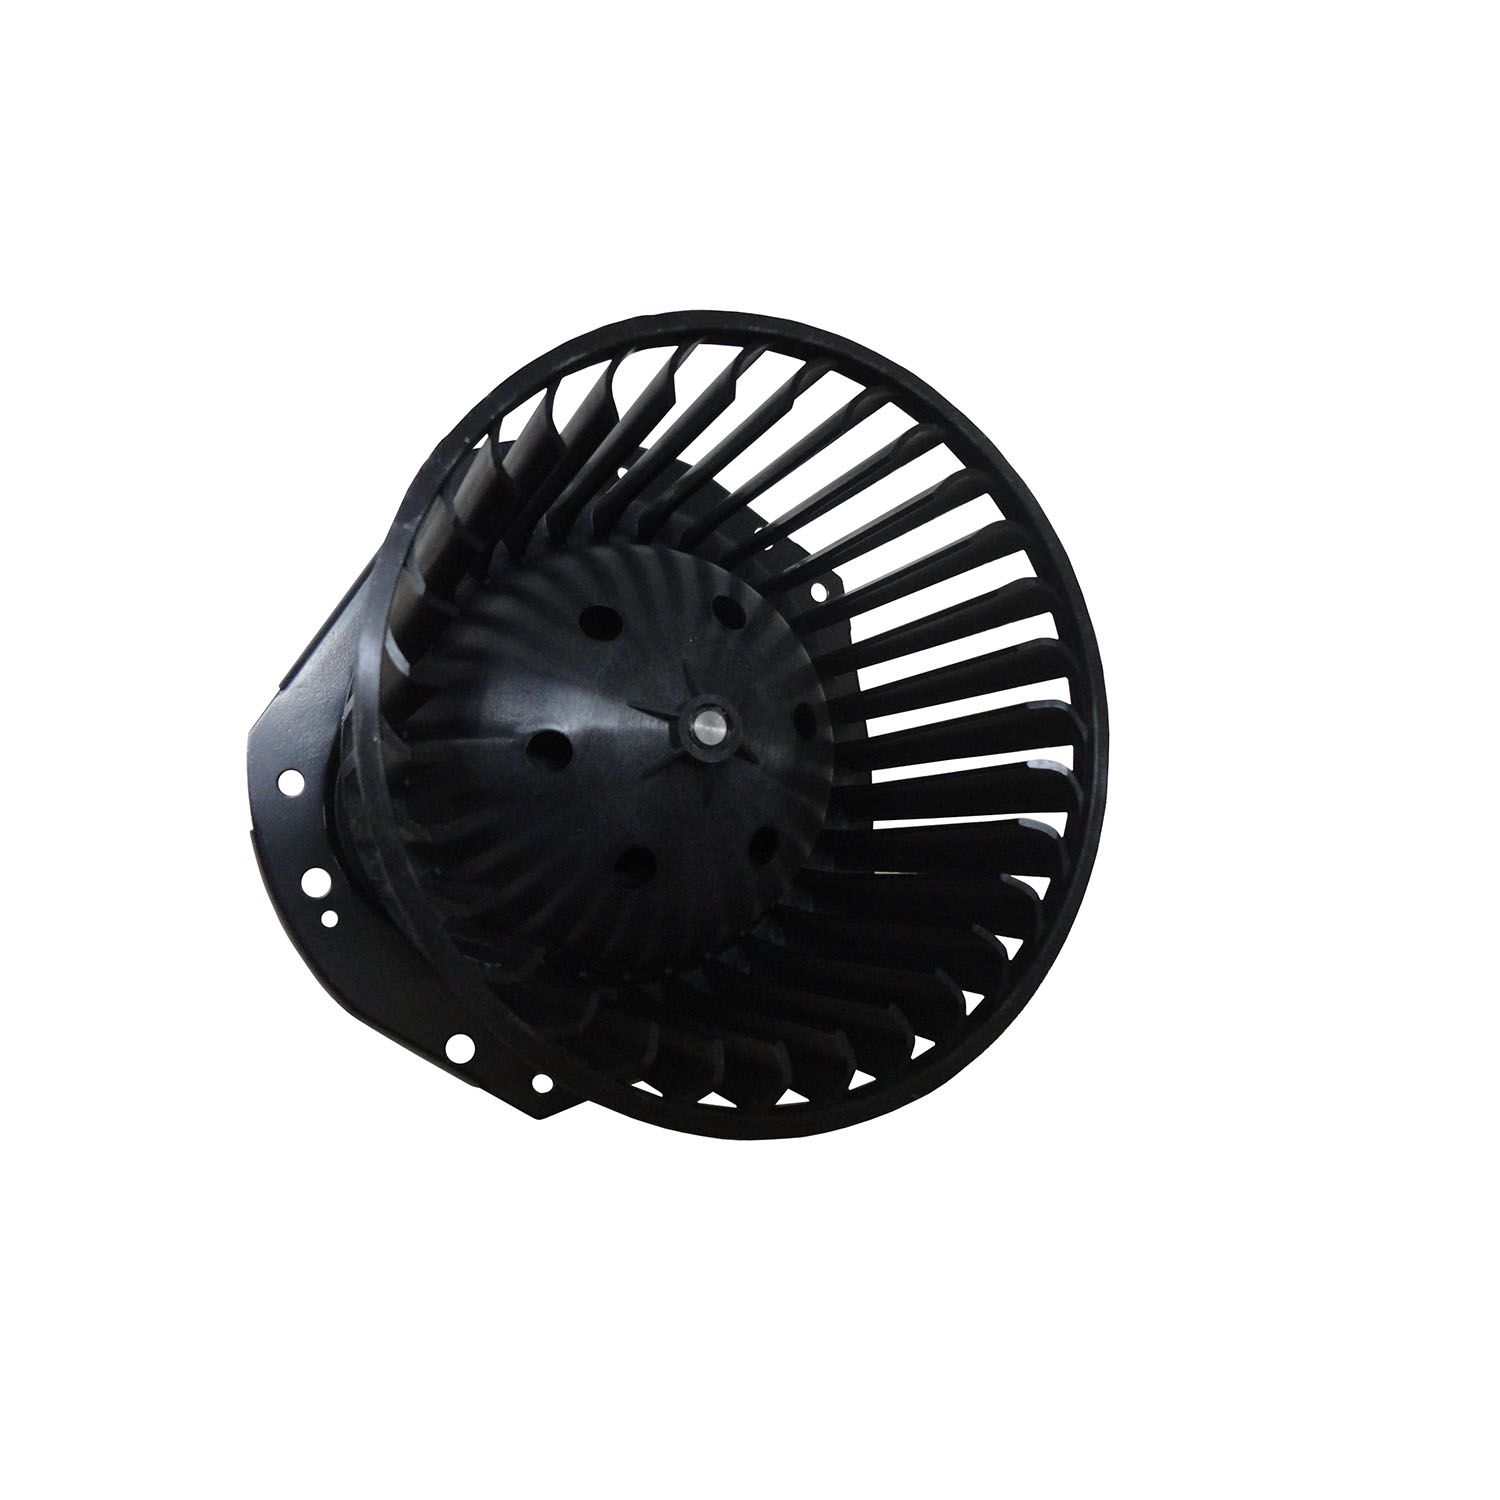 Ventilador Interno do GM S-10 e Blazer - 12 V